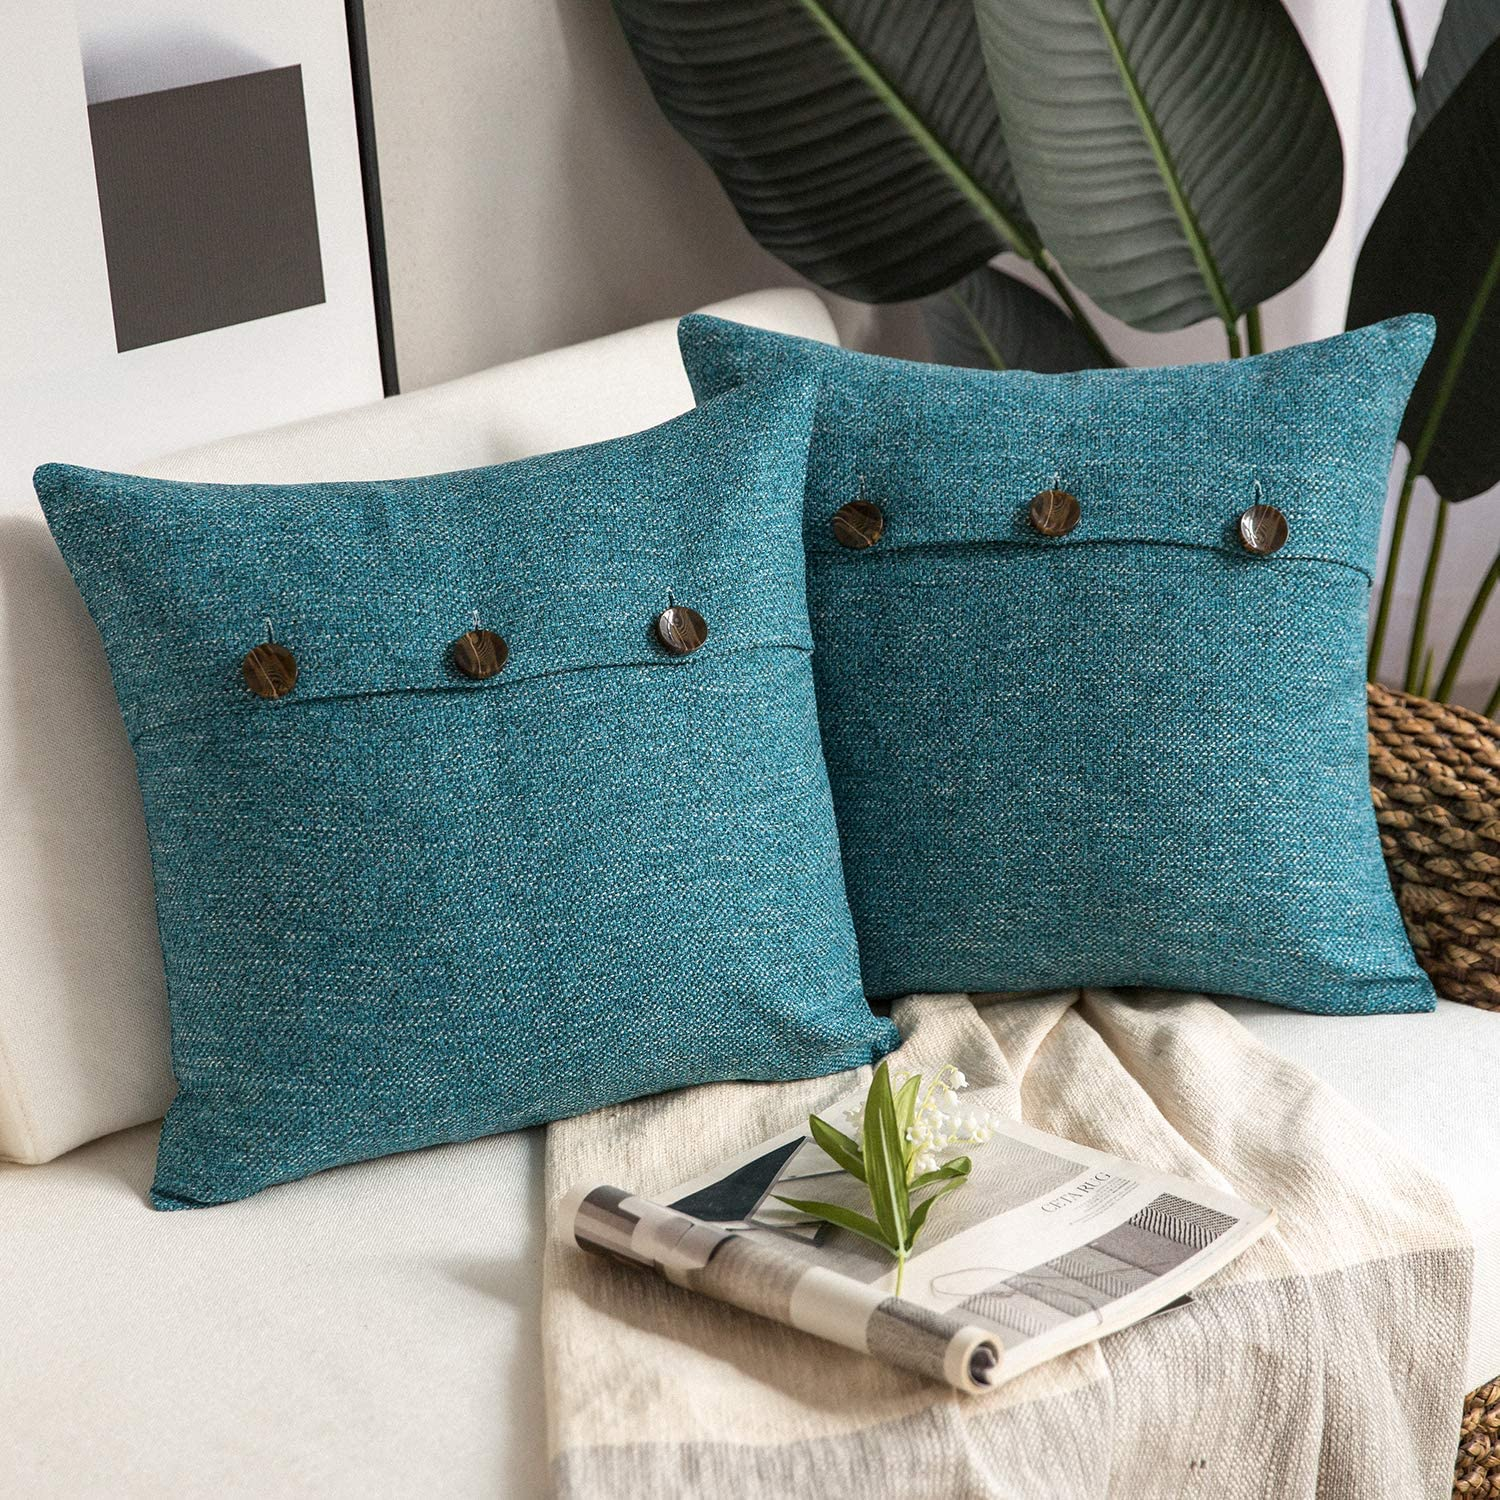 Phantoscope Farmhouse Throw Pillow Covers Triple Button Vintage Linen Decorative Pillow Cases for Couch Bed and Chair Lake Blue, 18 x 18 inches 45 x 45 cm, Pack of 2